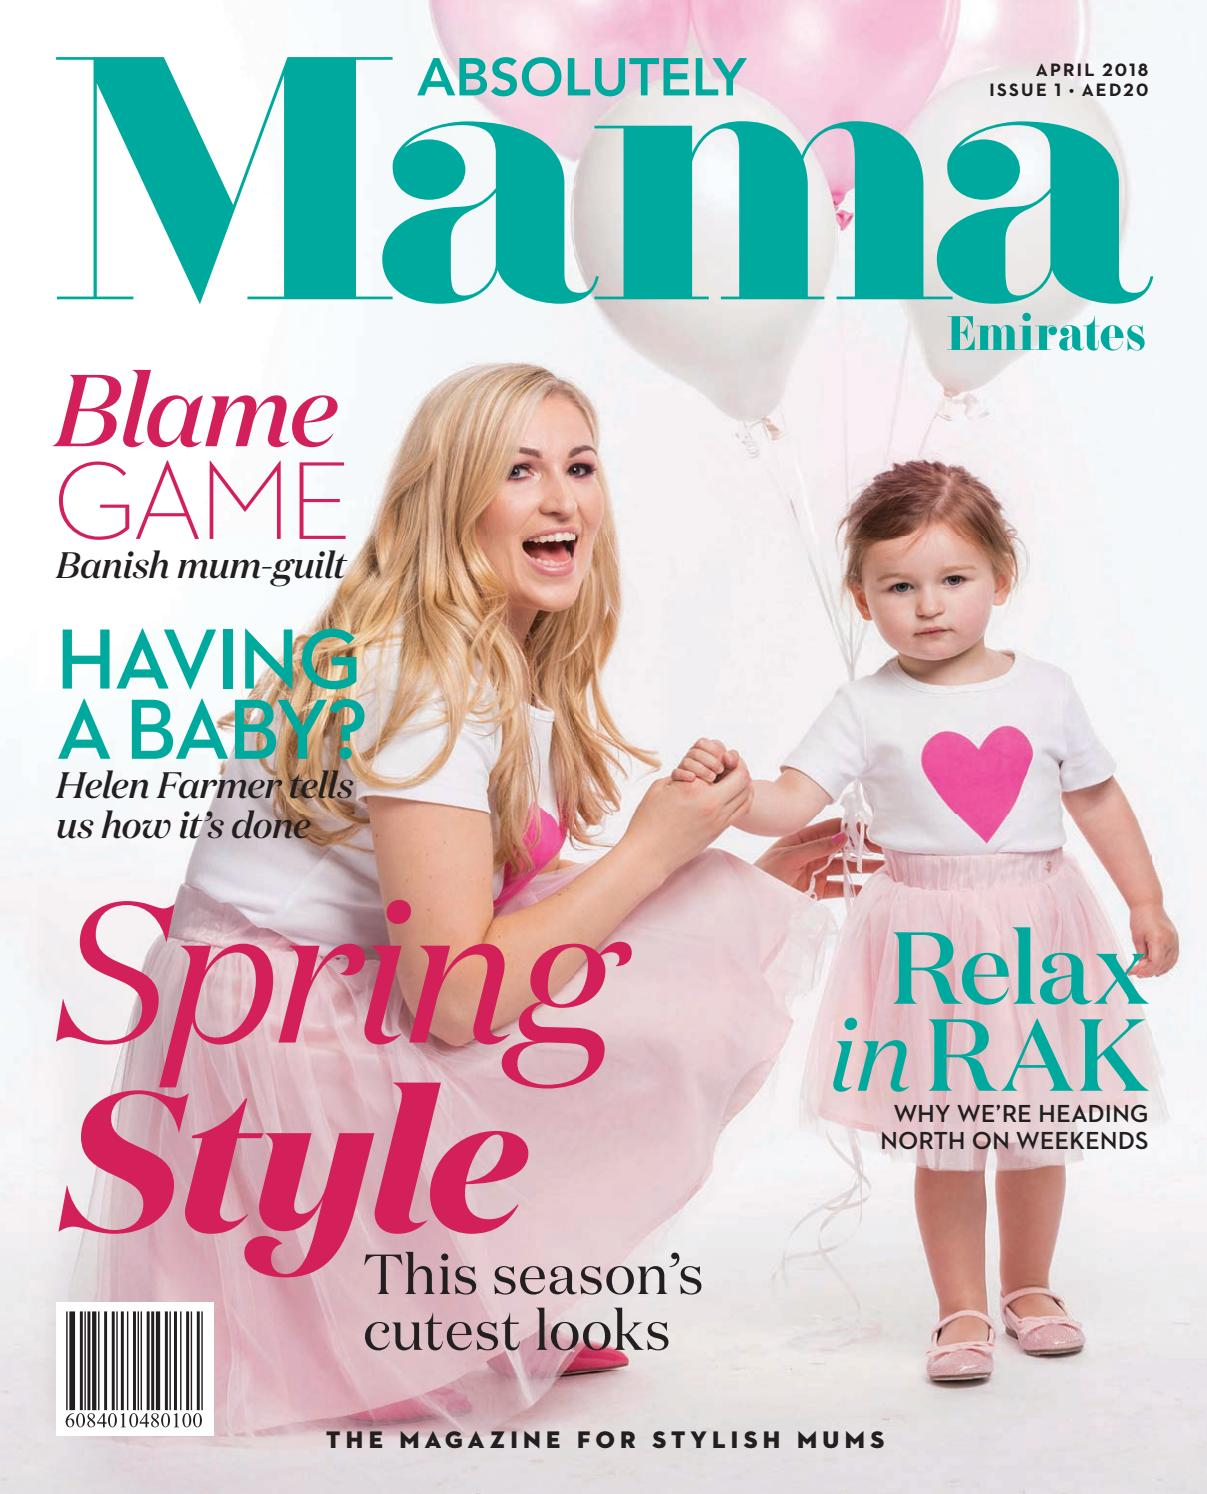 Absolutely Mama Emirates Issue One 2018 By Zest Media London Issuu Dreamgenii Pregnancy And Feeding Support Pillow 933928